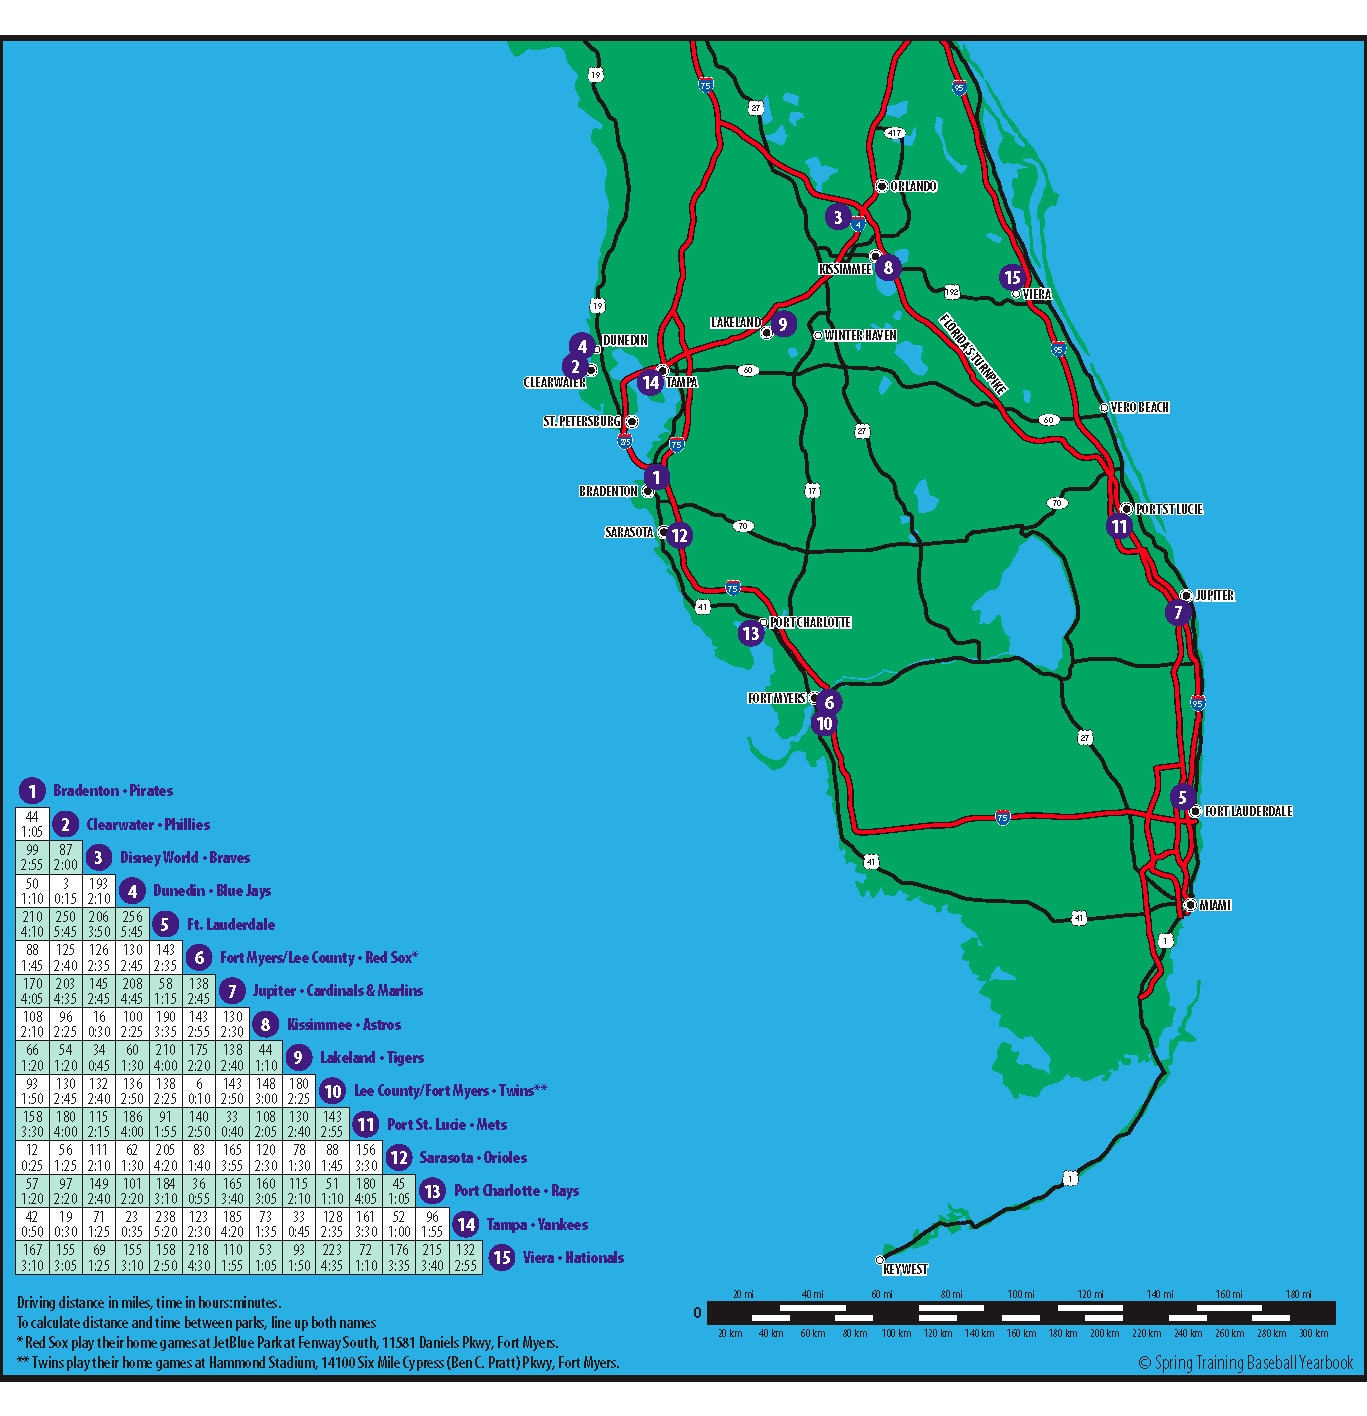 Spring Training Online: Complete Guide To Spring Training 2012 - Map Of Spring Training Sites In Florida